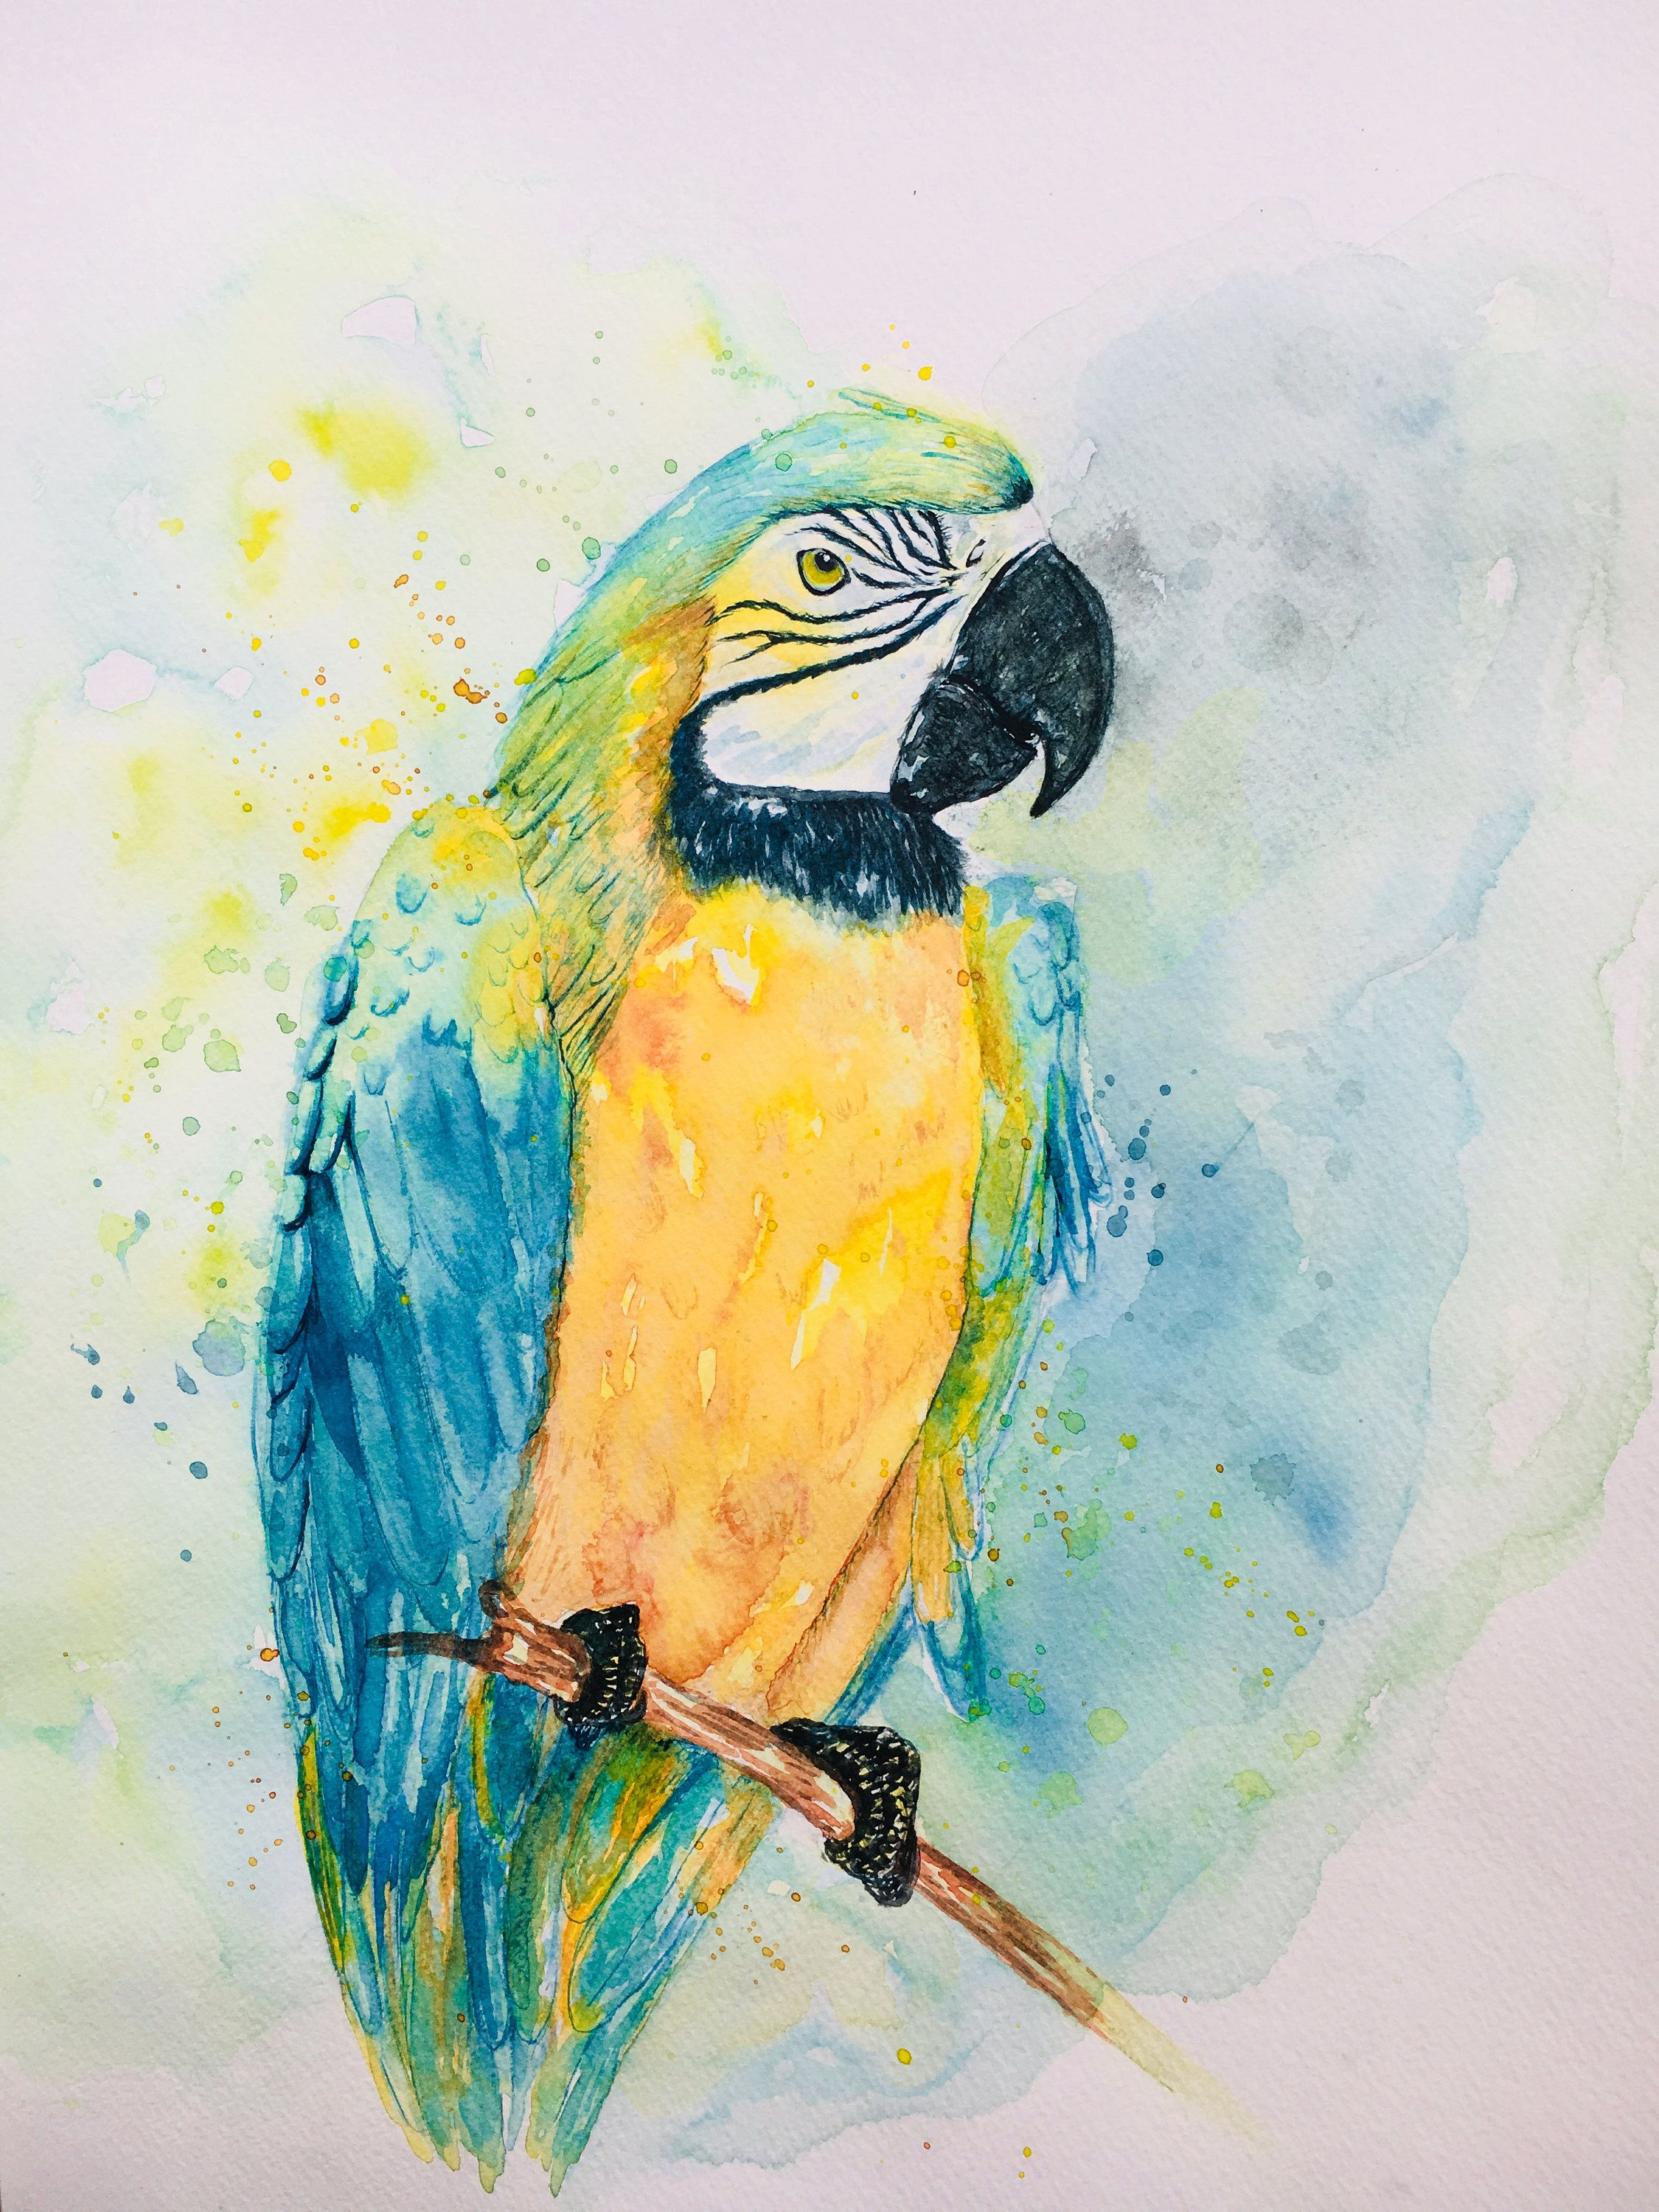 Parrot Art Blue And Yellow Watercolor Splash Design Dessin